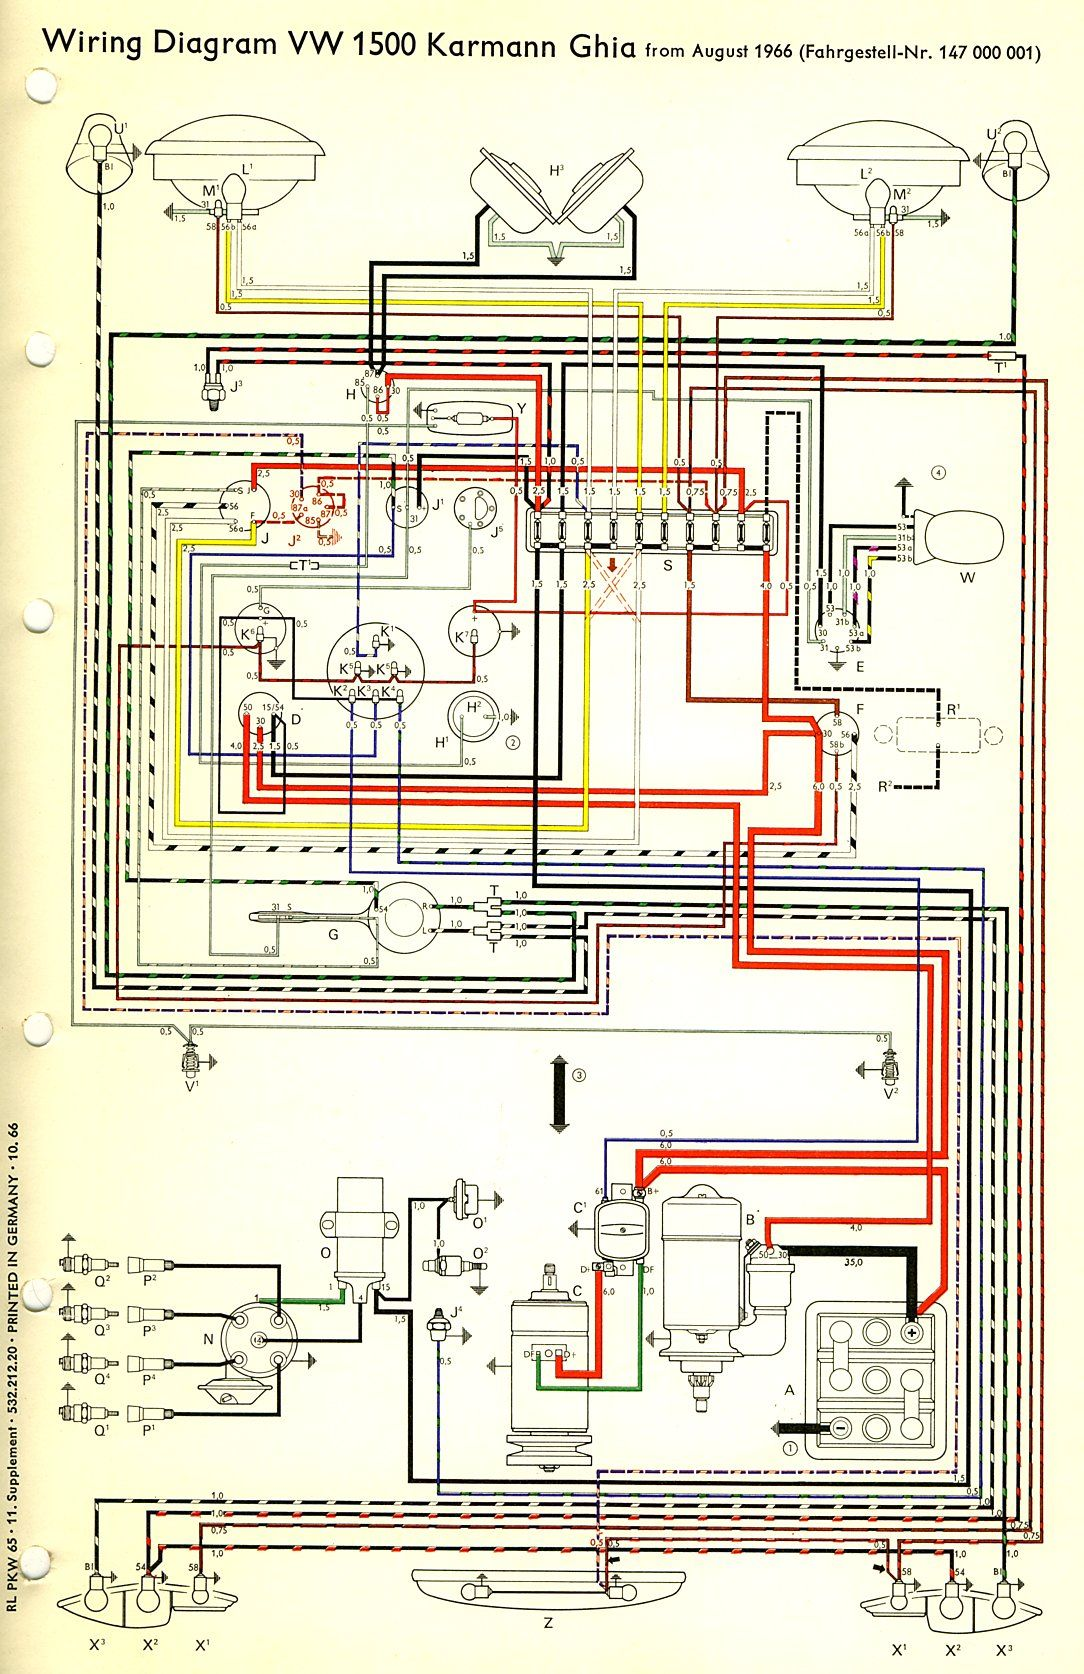 TheSambacom Karmann Ghia Wiring Diagrams, thesamba karmann ghia wiring  diagrams open the diagram on yourputer with an image program please note  some of the fus… di 2020Pinterest